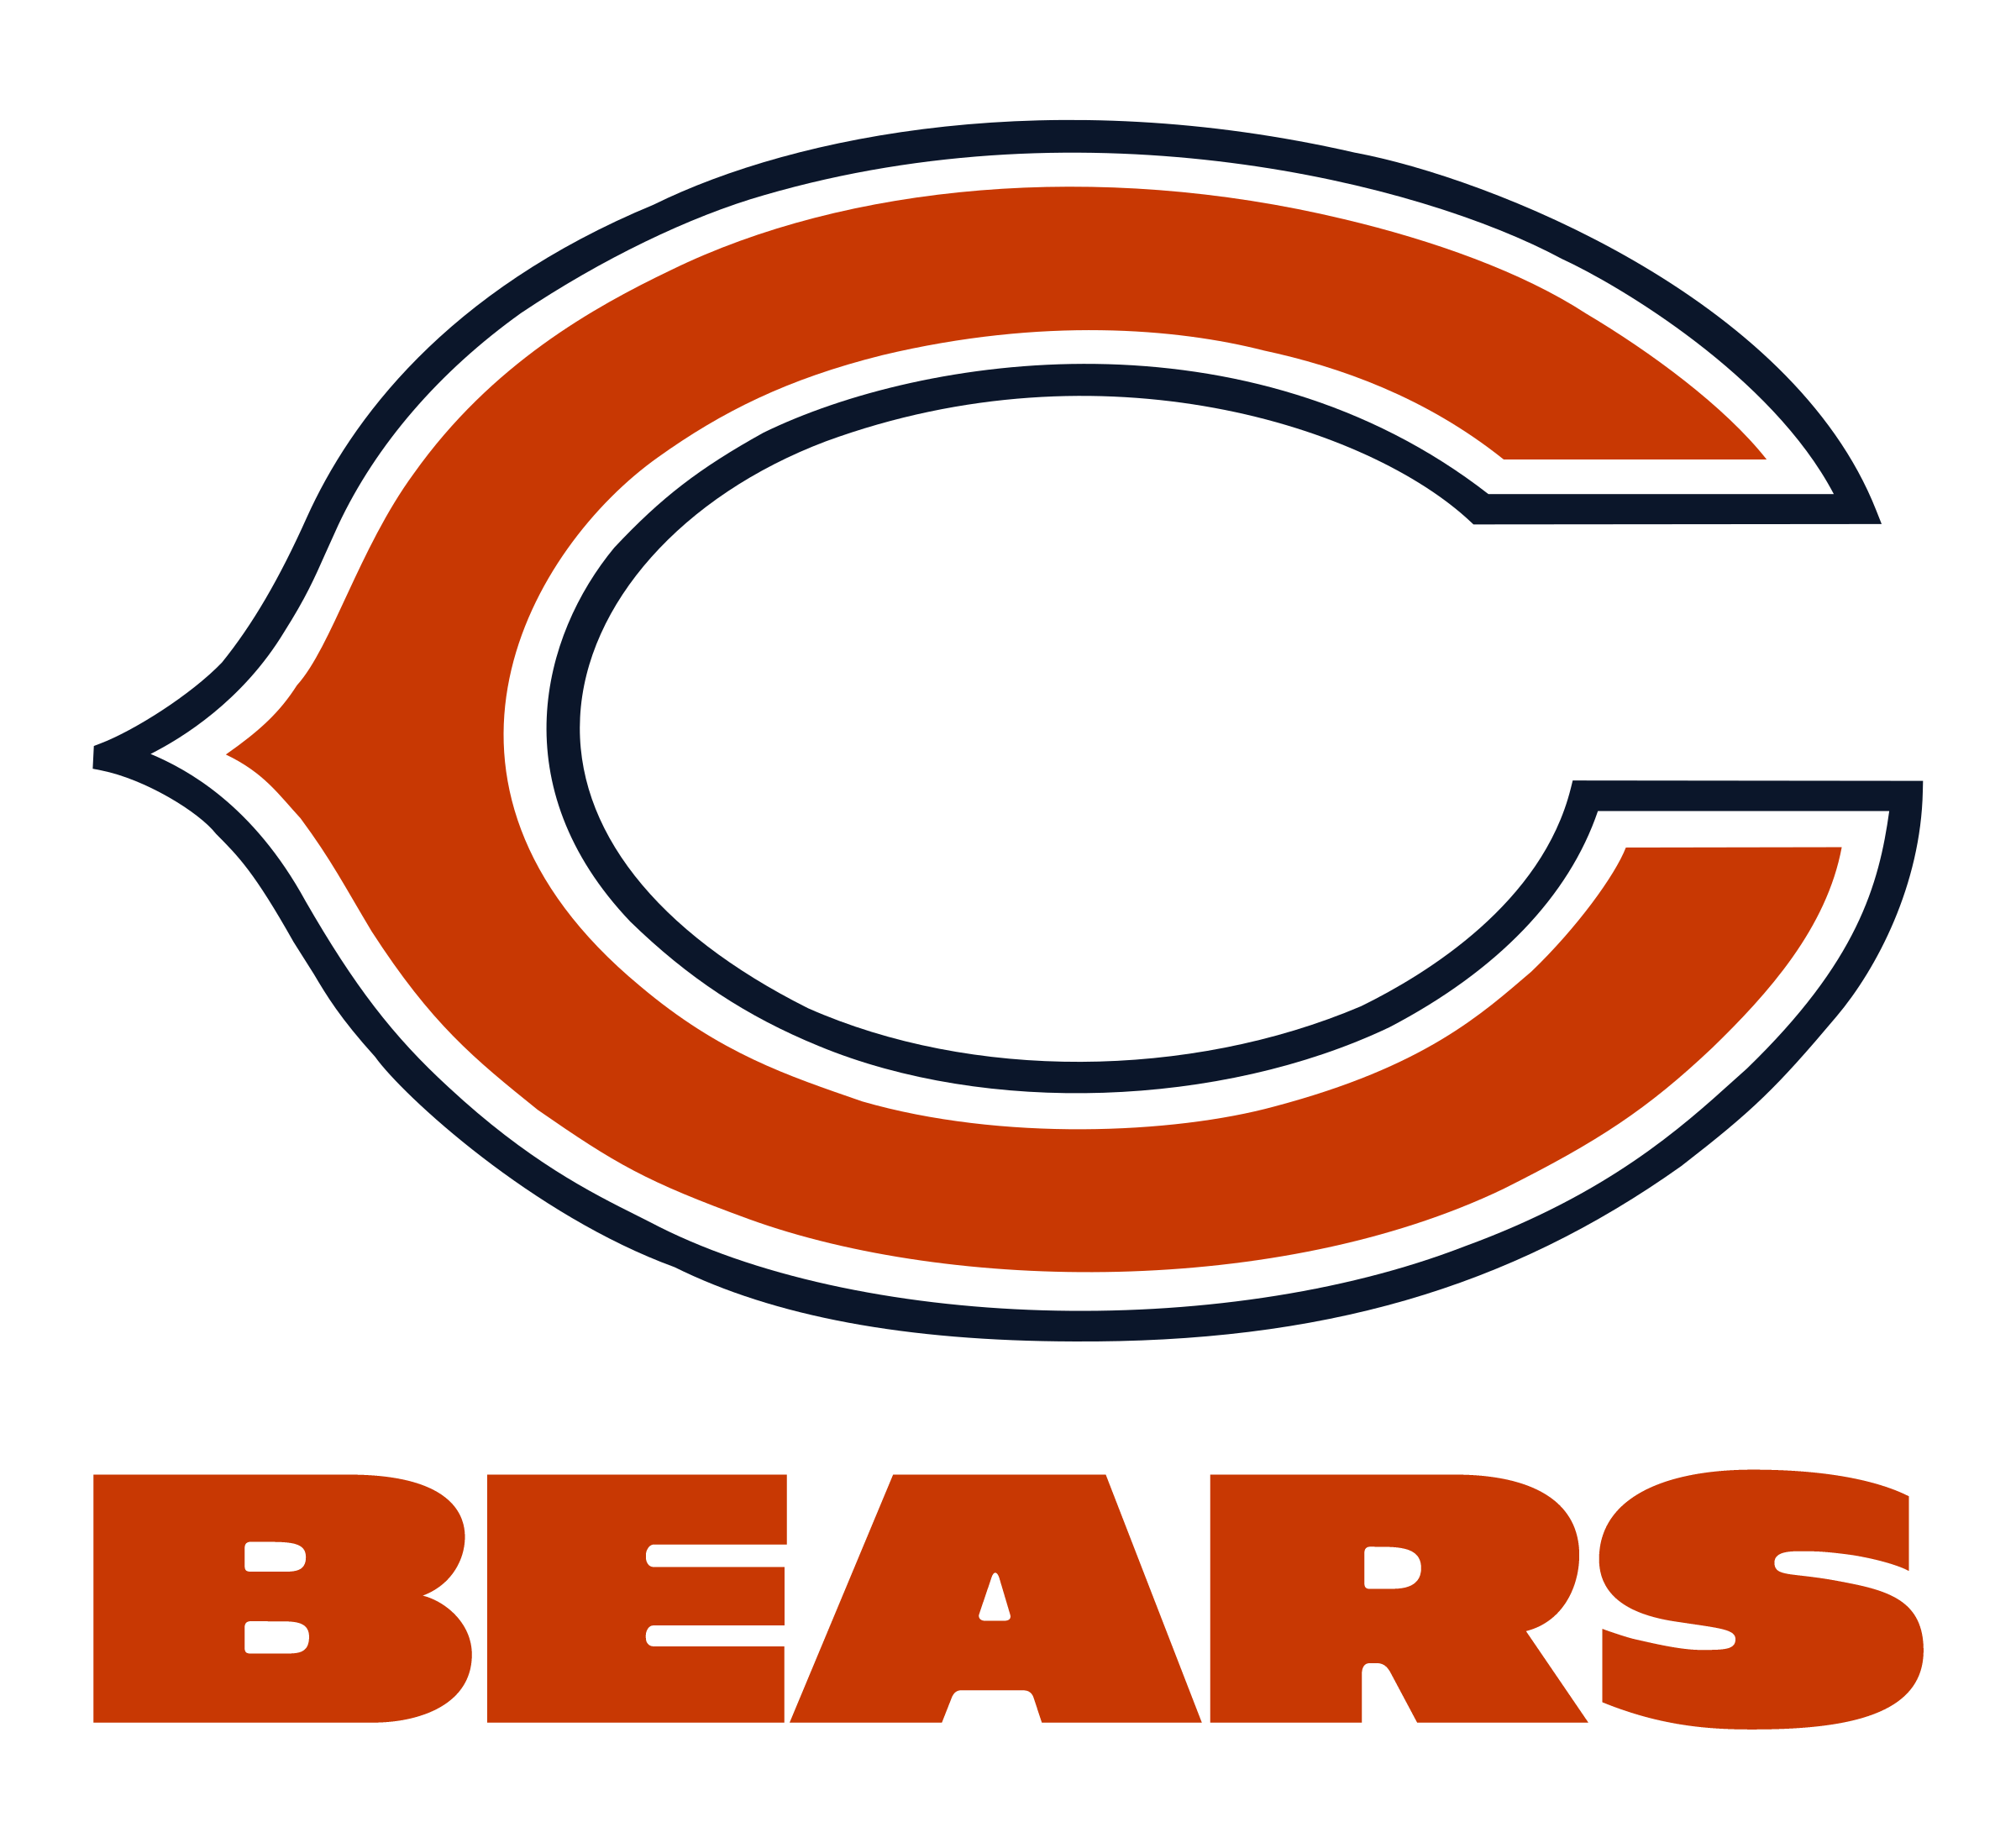 Green bay packer football christmas clipart png transparent library Logos and uniforms of the Chicago Bears NFL Green Bay Packers Super ... png transparent library